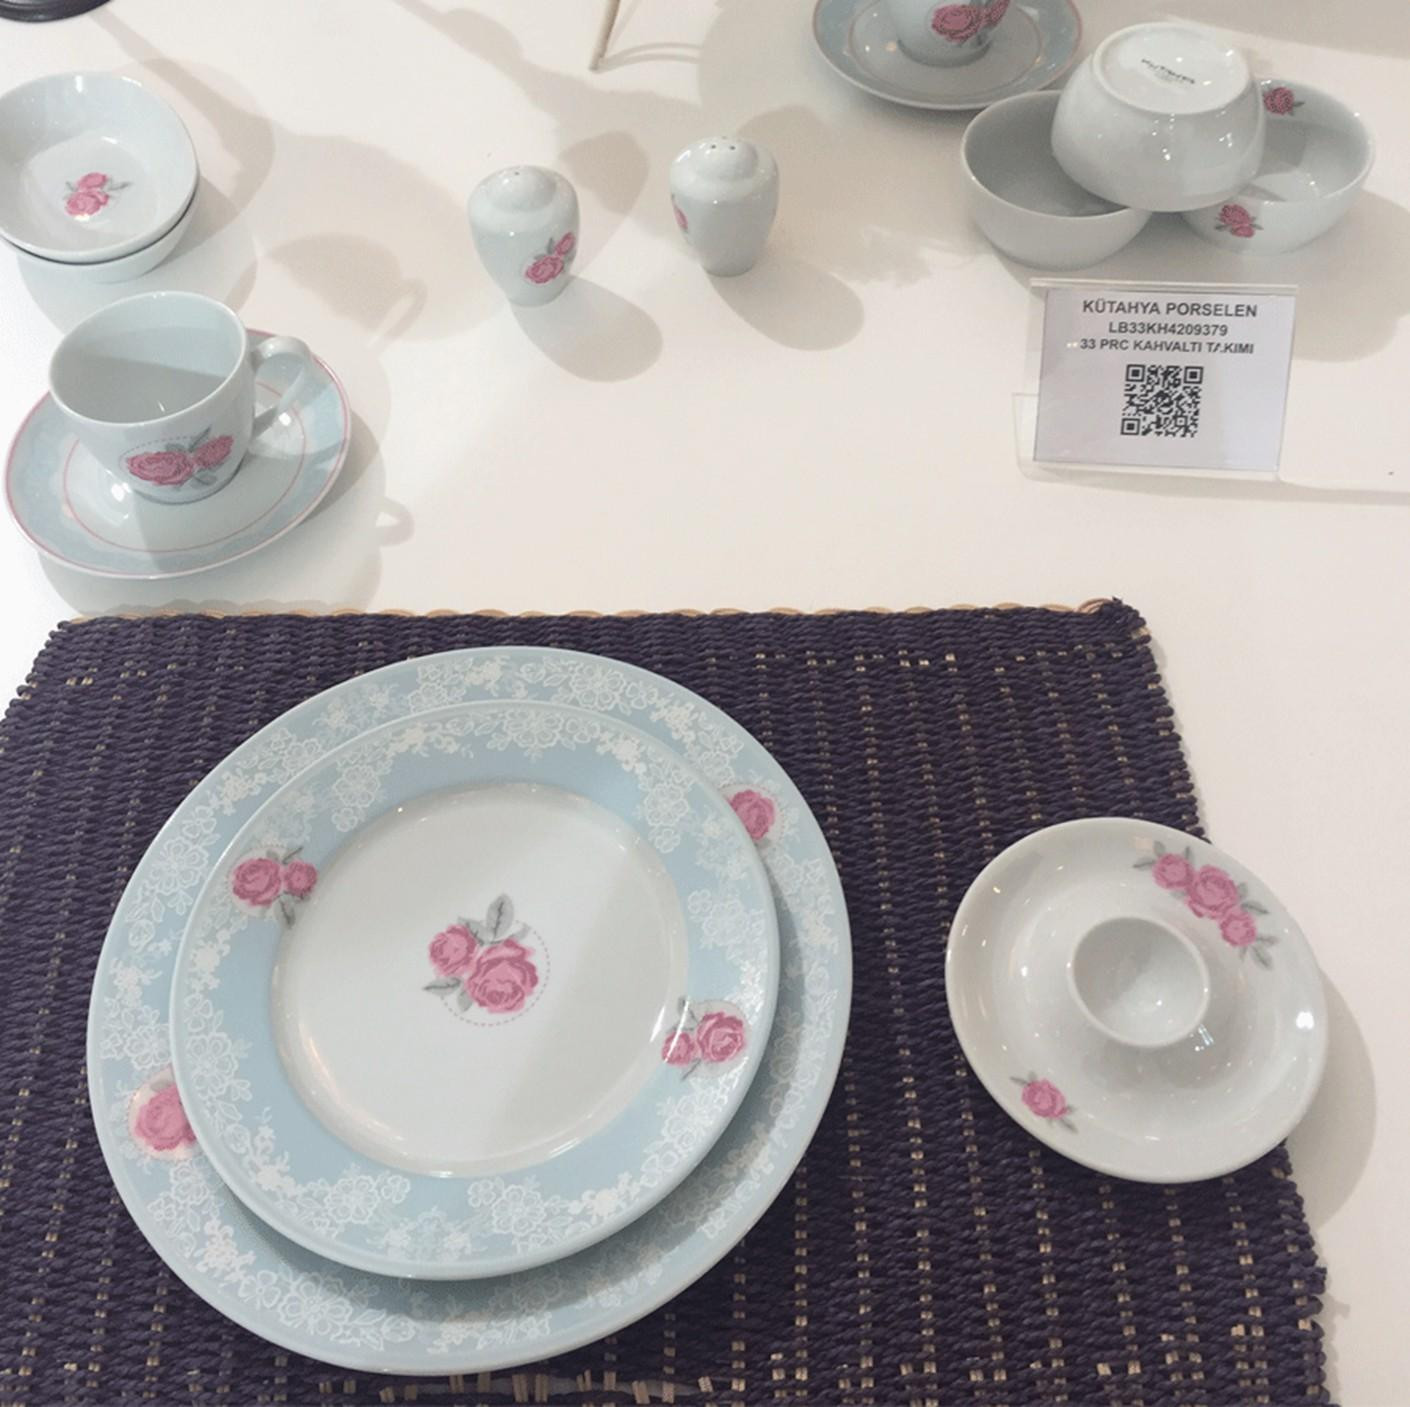 Kutahya Porselen 33 Pieces 9379 Patterned Dinnerware Set